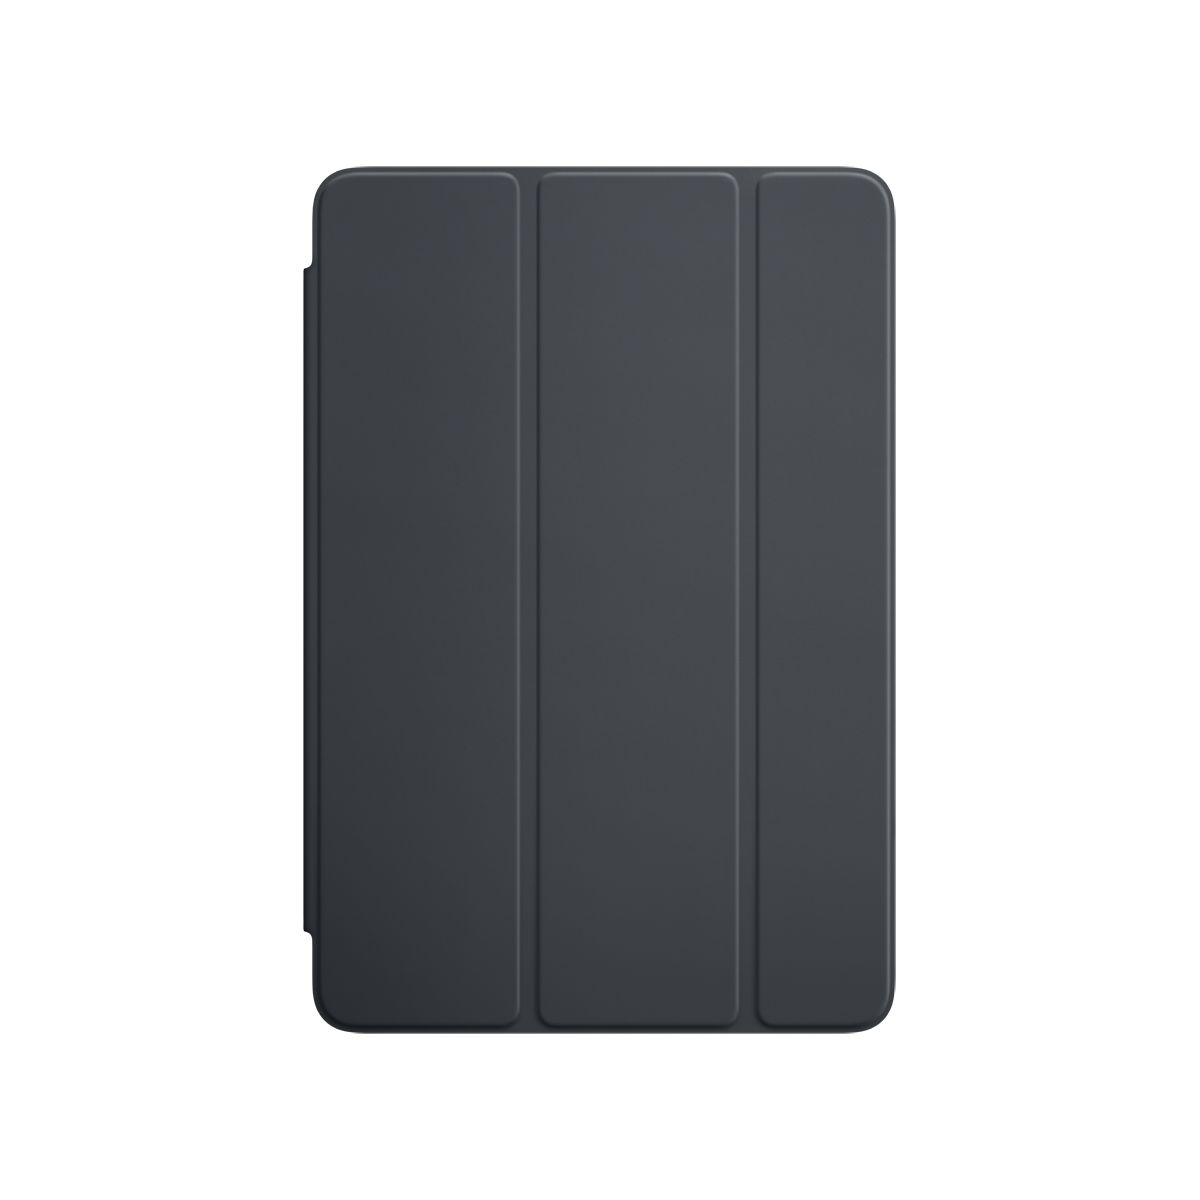 Etui APPLE iPad Mini 4 silicone gris anthracite (photo)